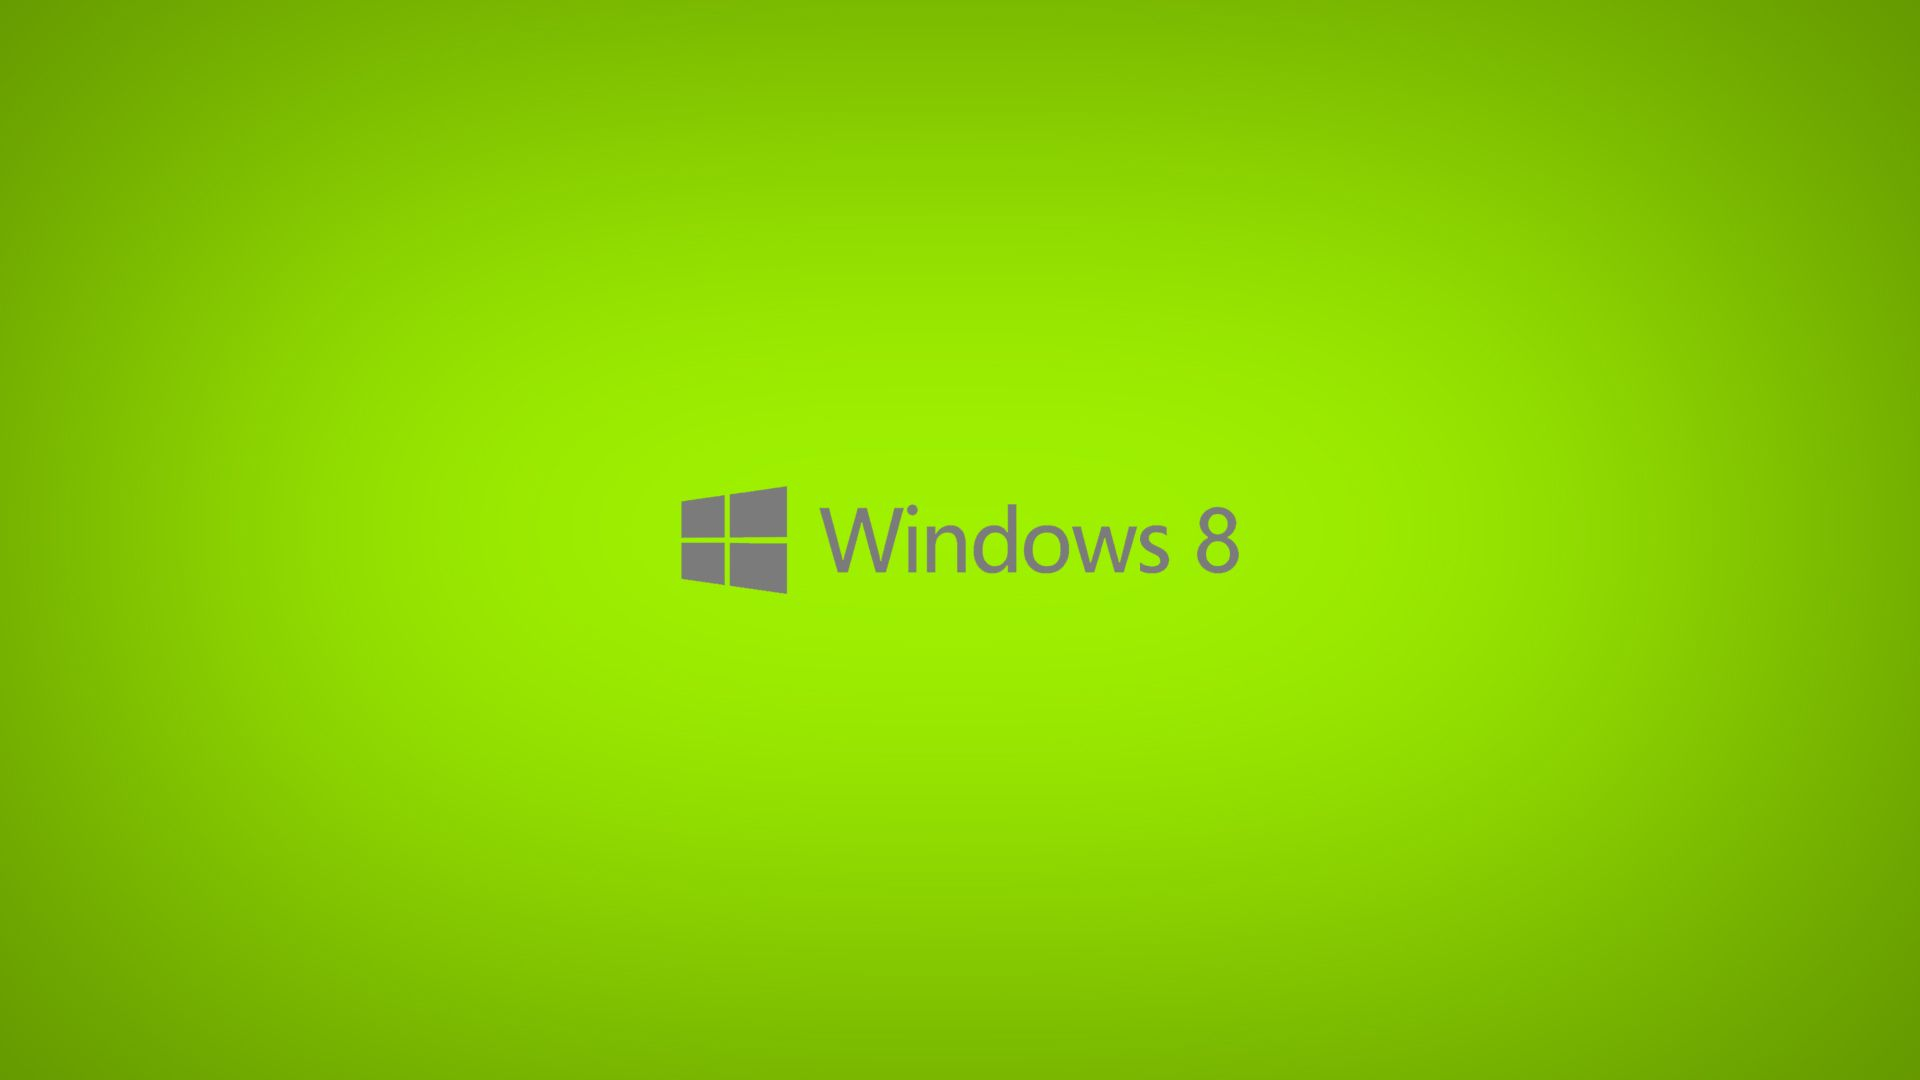 preview windows 8 green wallpaperloreen hearns | epic car